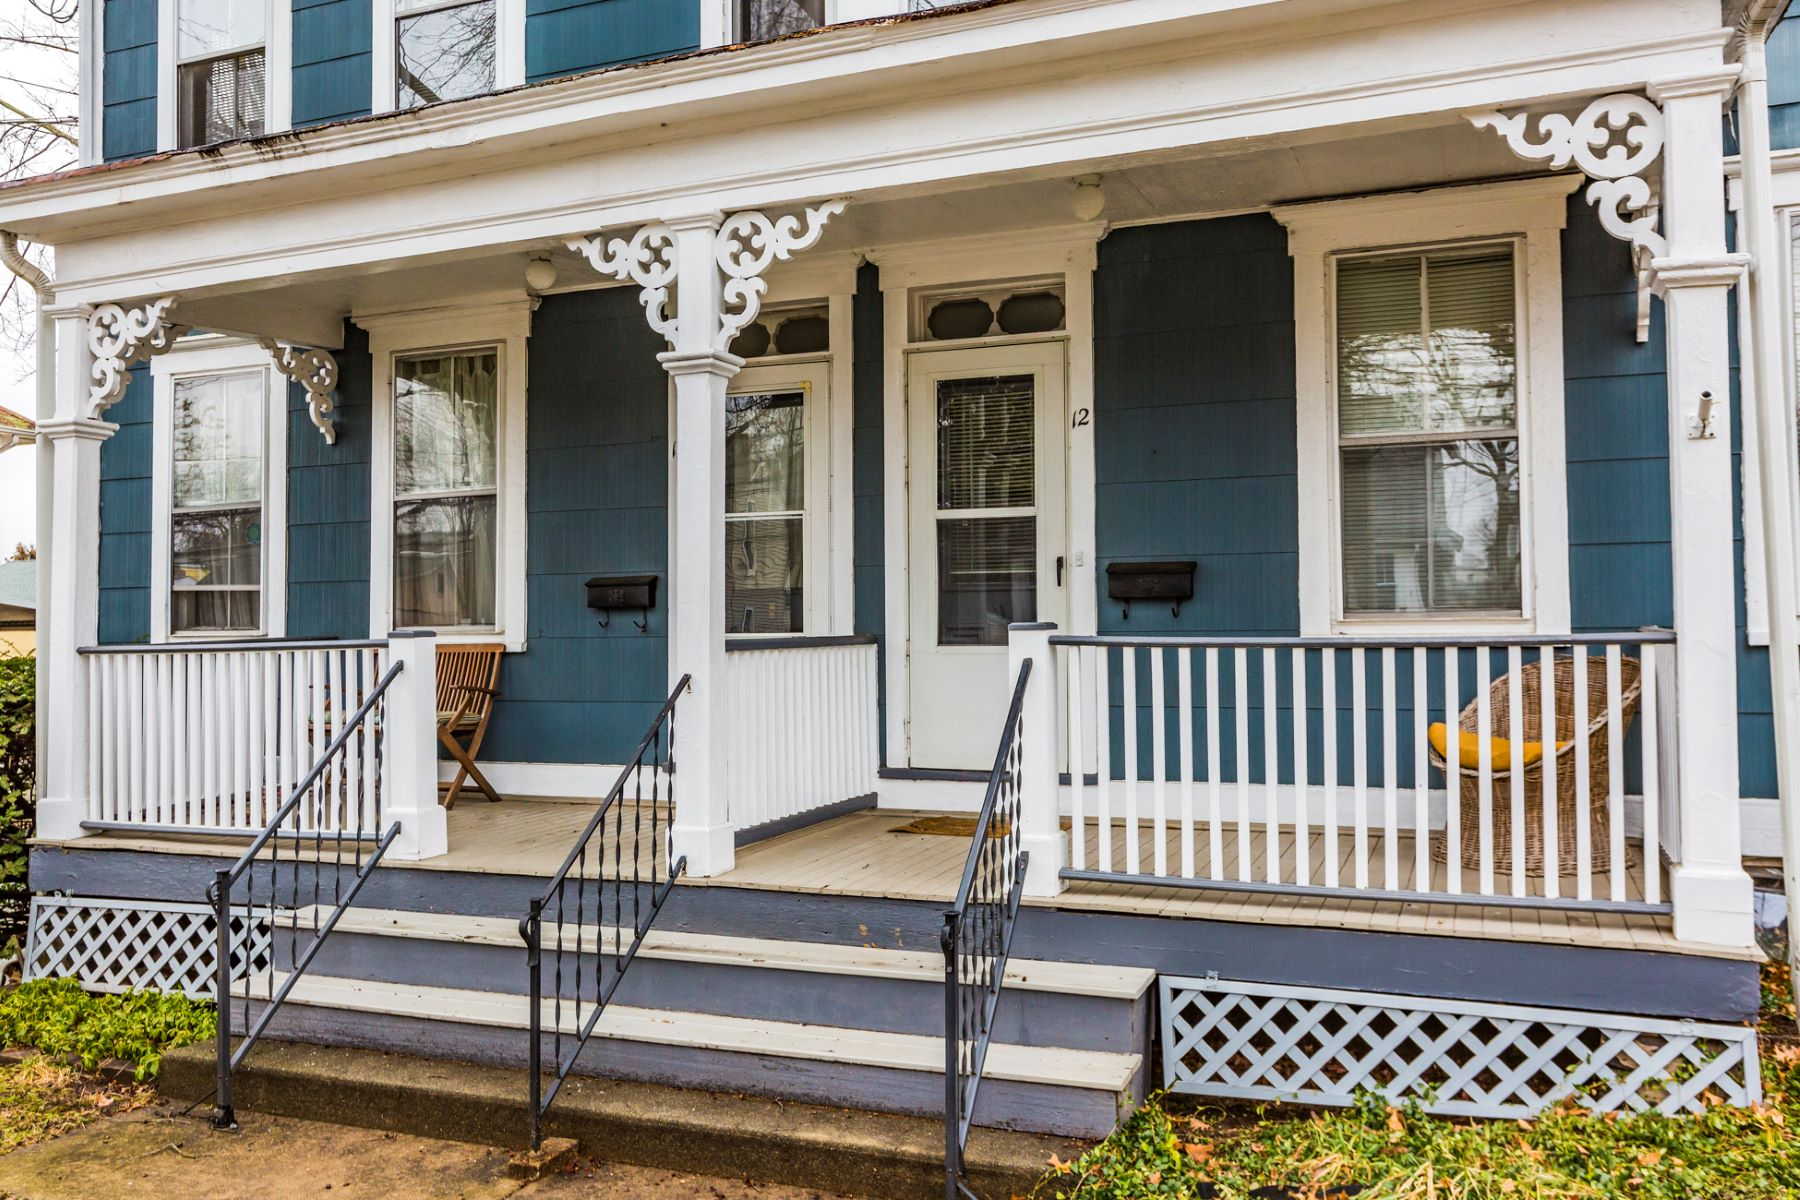 Duplex for Sale at A Terrific In-Town Lifestyle With Income 10-12 Princeton Avenue Hopewell, New Jersey, 08525 United States